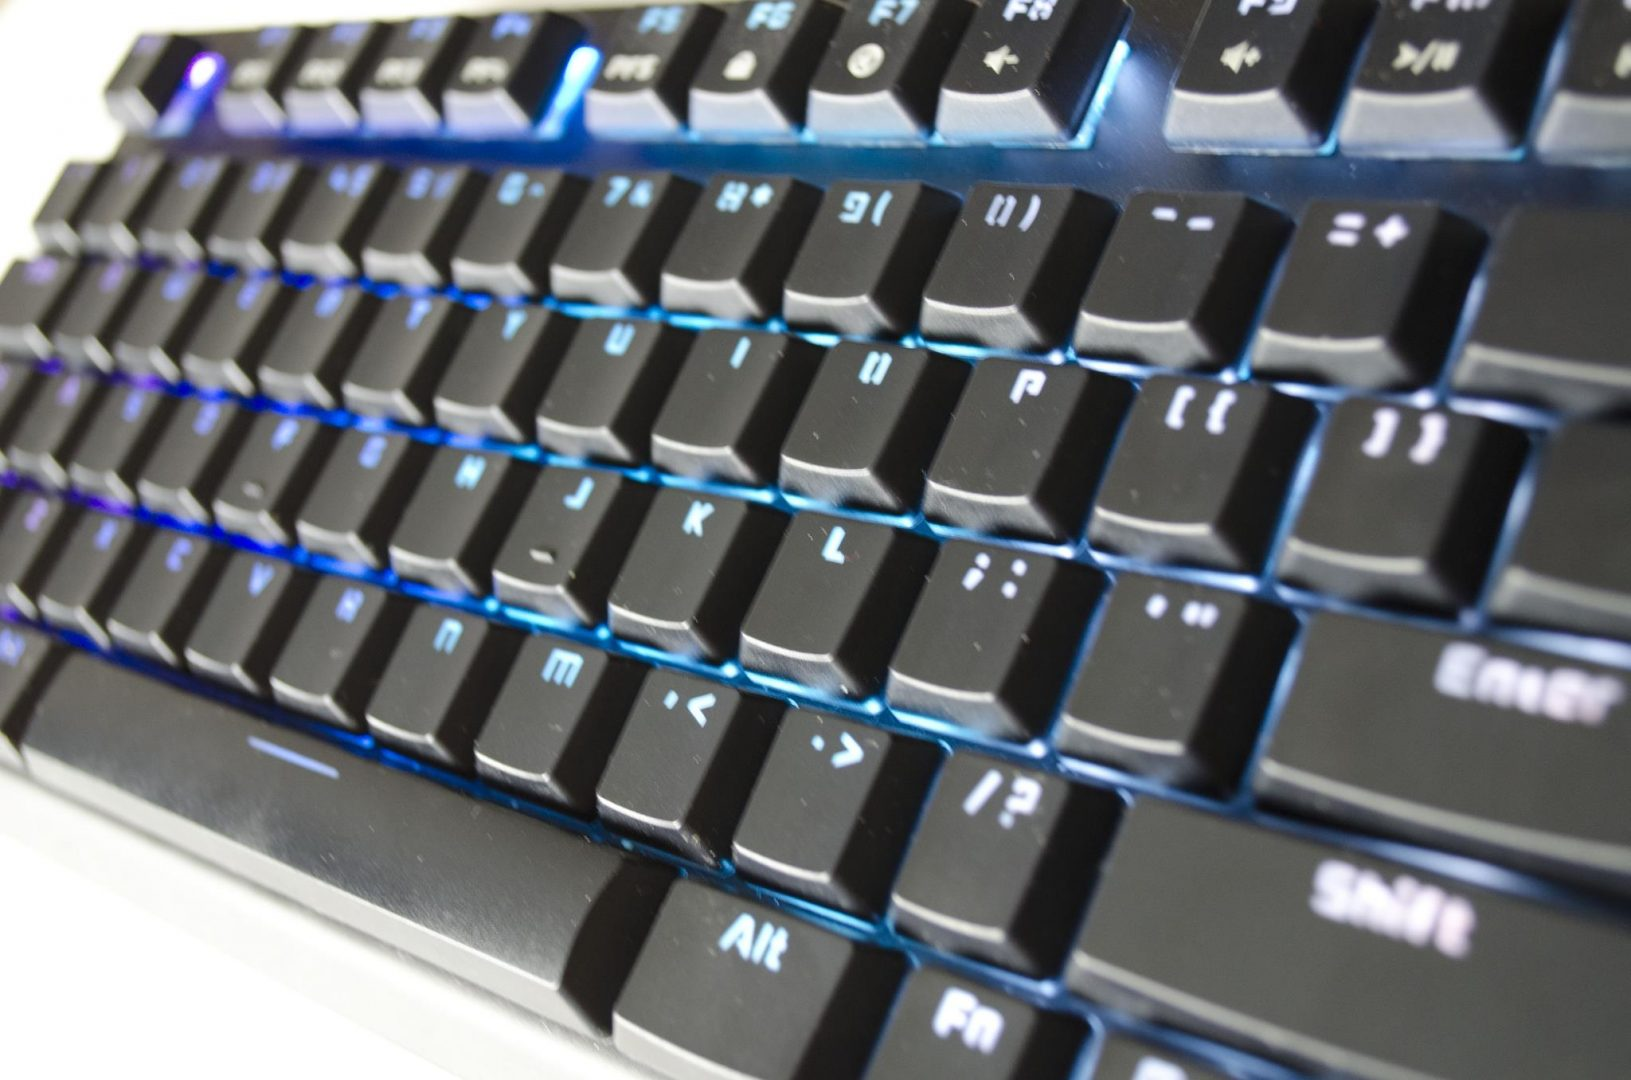 tesoro-gram-spectrum-rgm-gaming-mechanical-keyboard-review_2